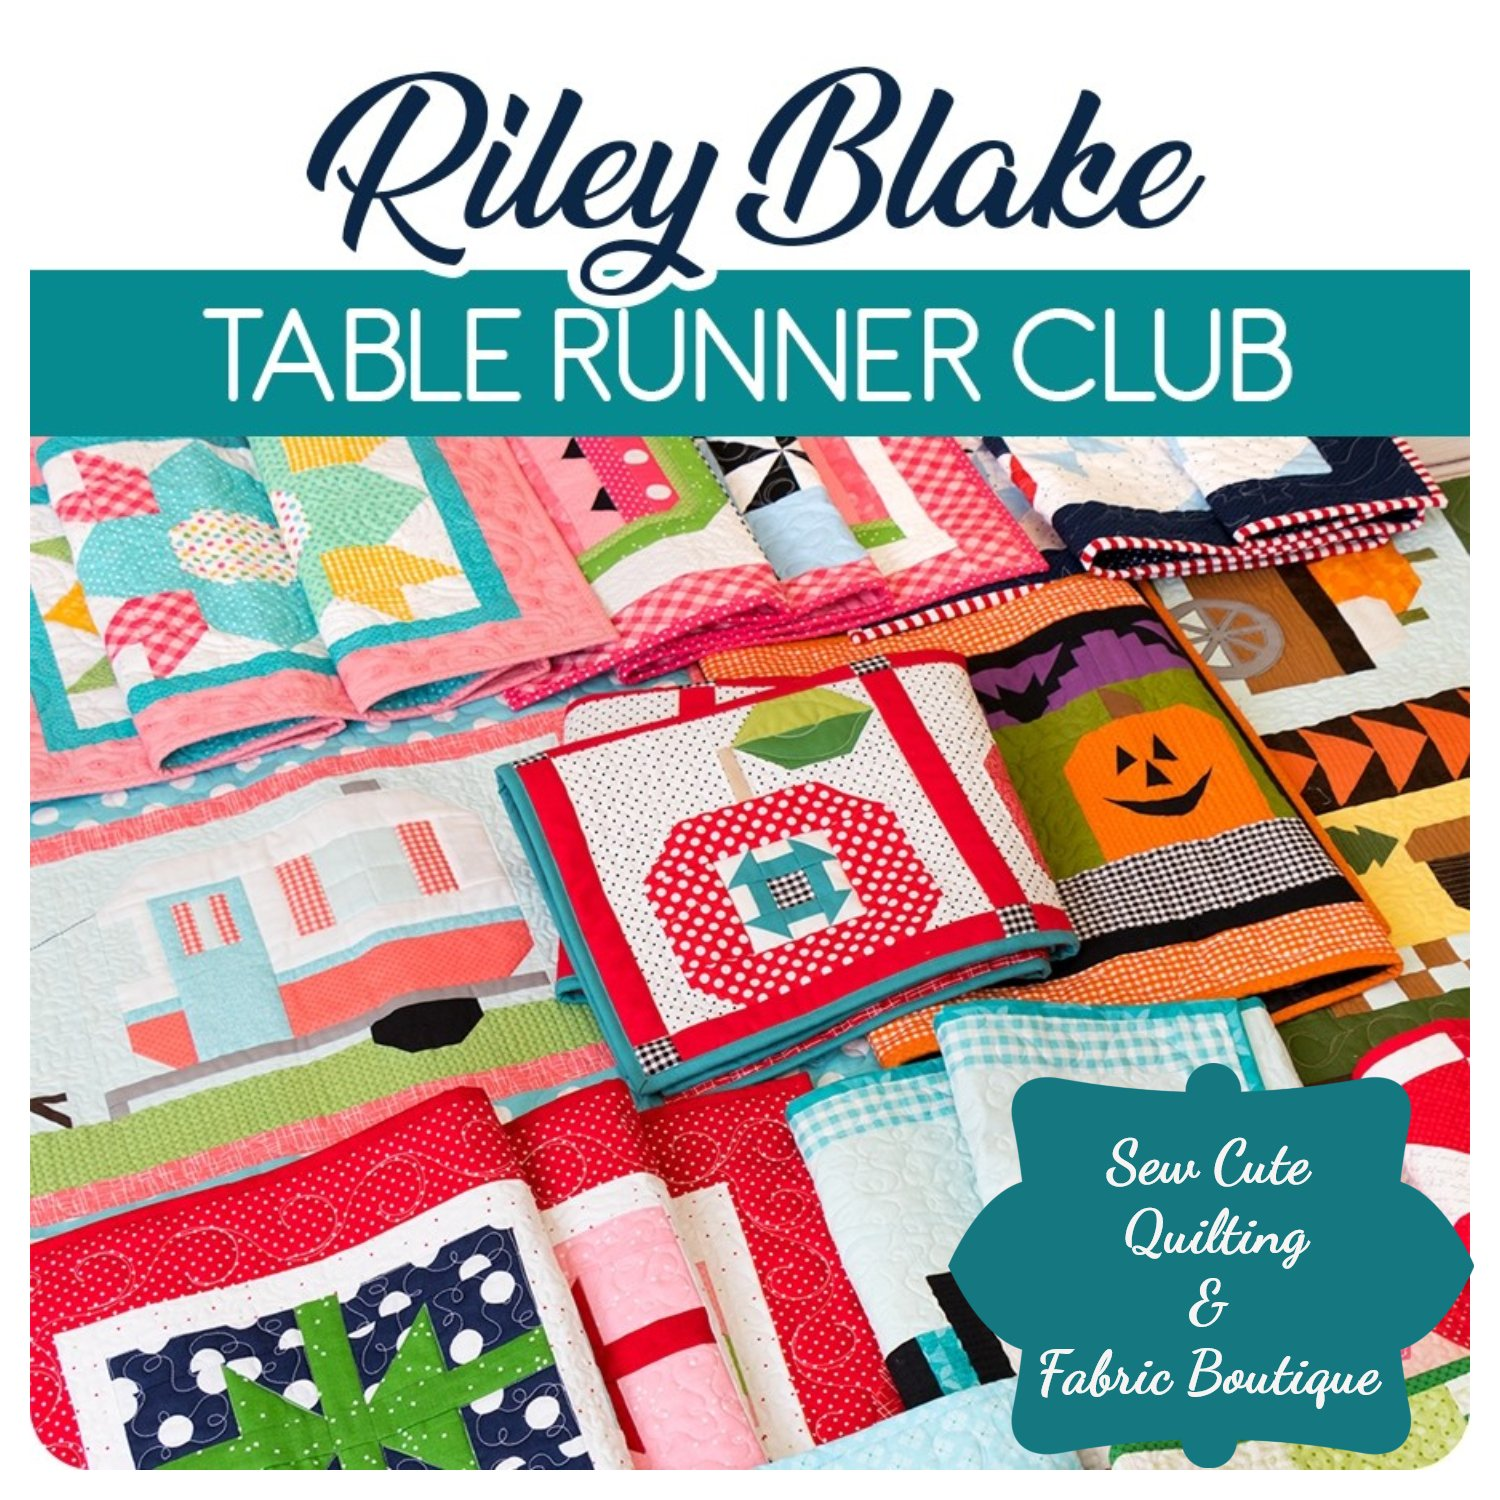 Table Runner of the Month- Membership Fee/SignUp